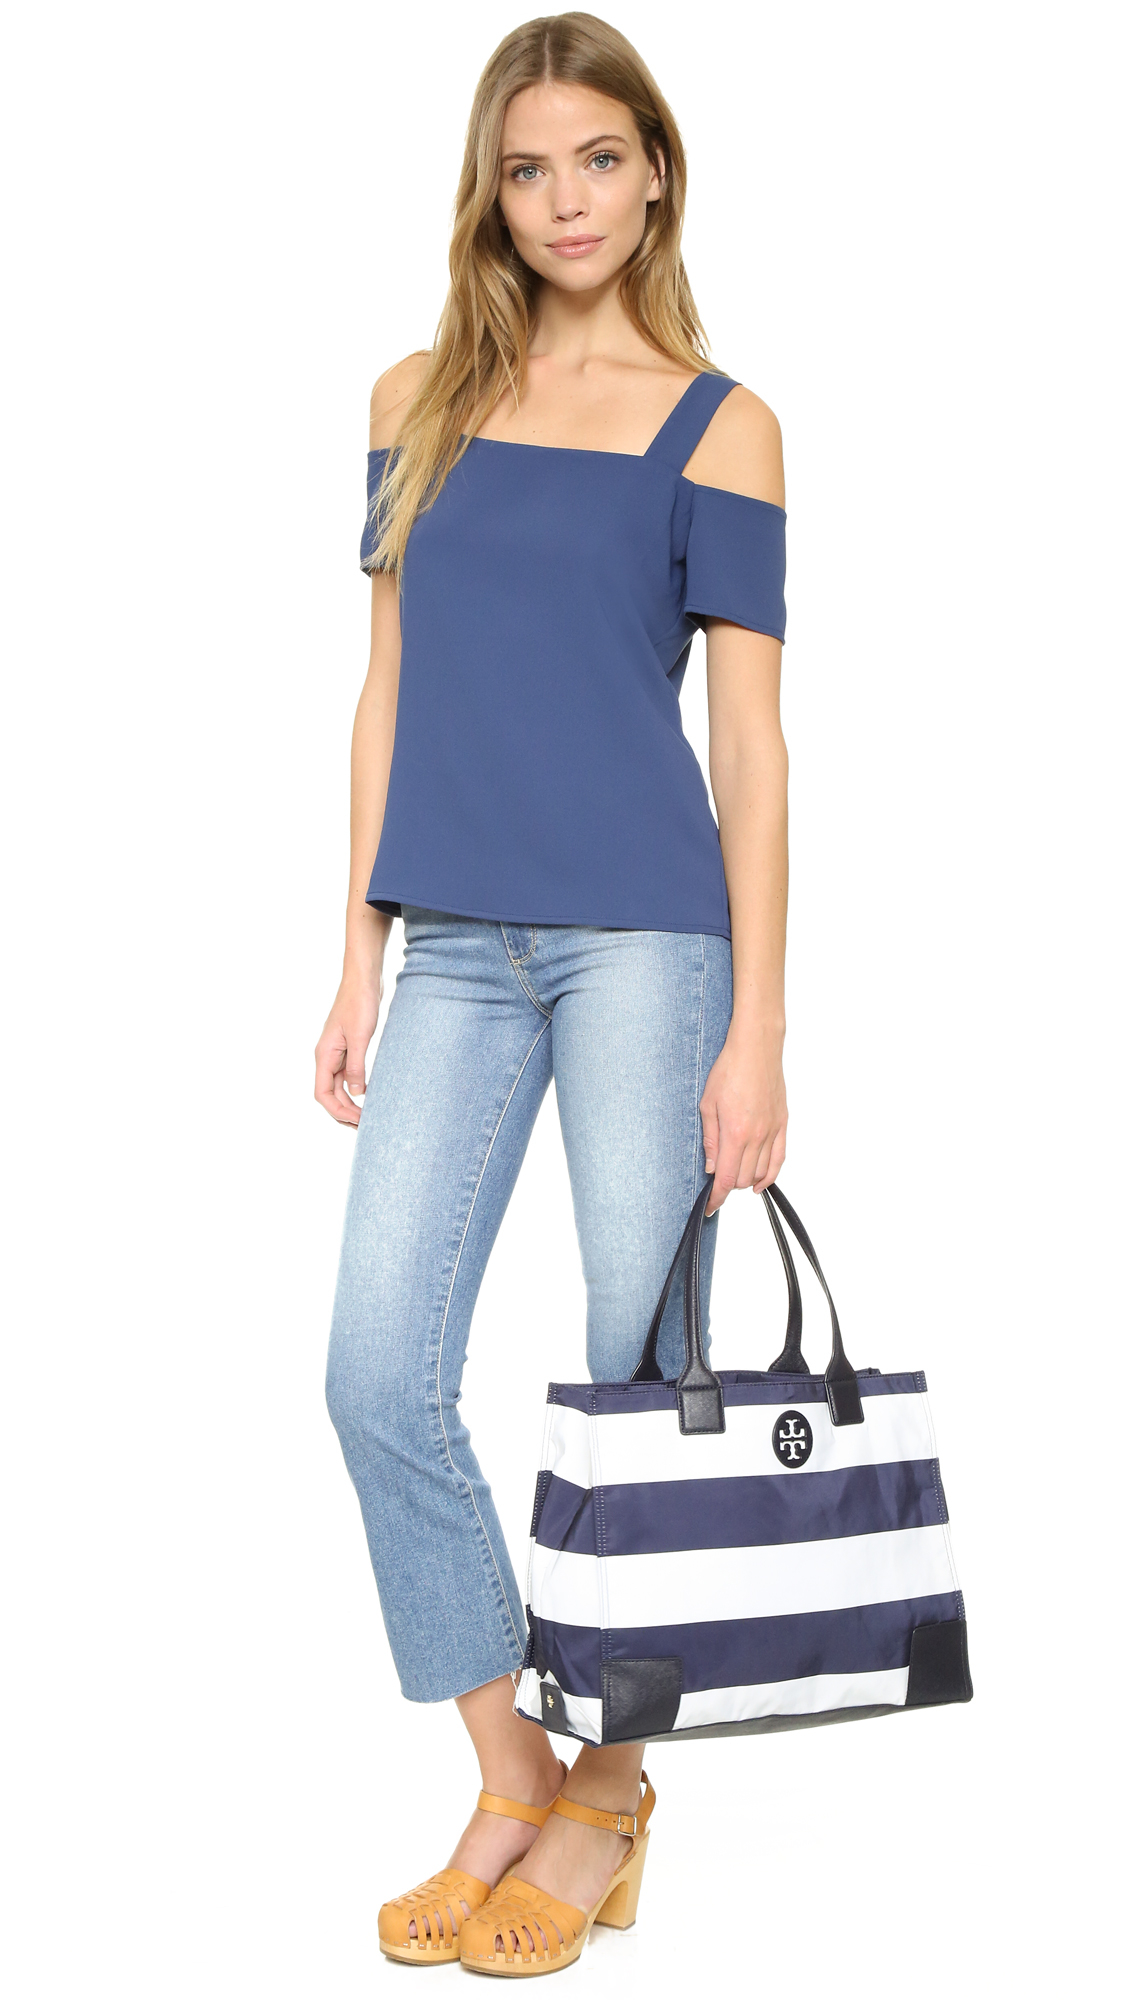 50a7ff281d6 Lyst - Tory Burch Packable Printed Ella Tote in Blue